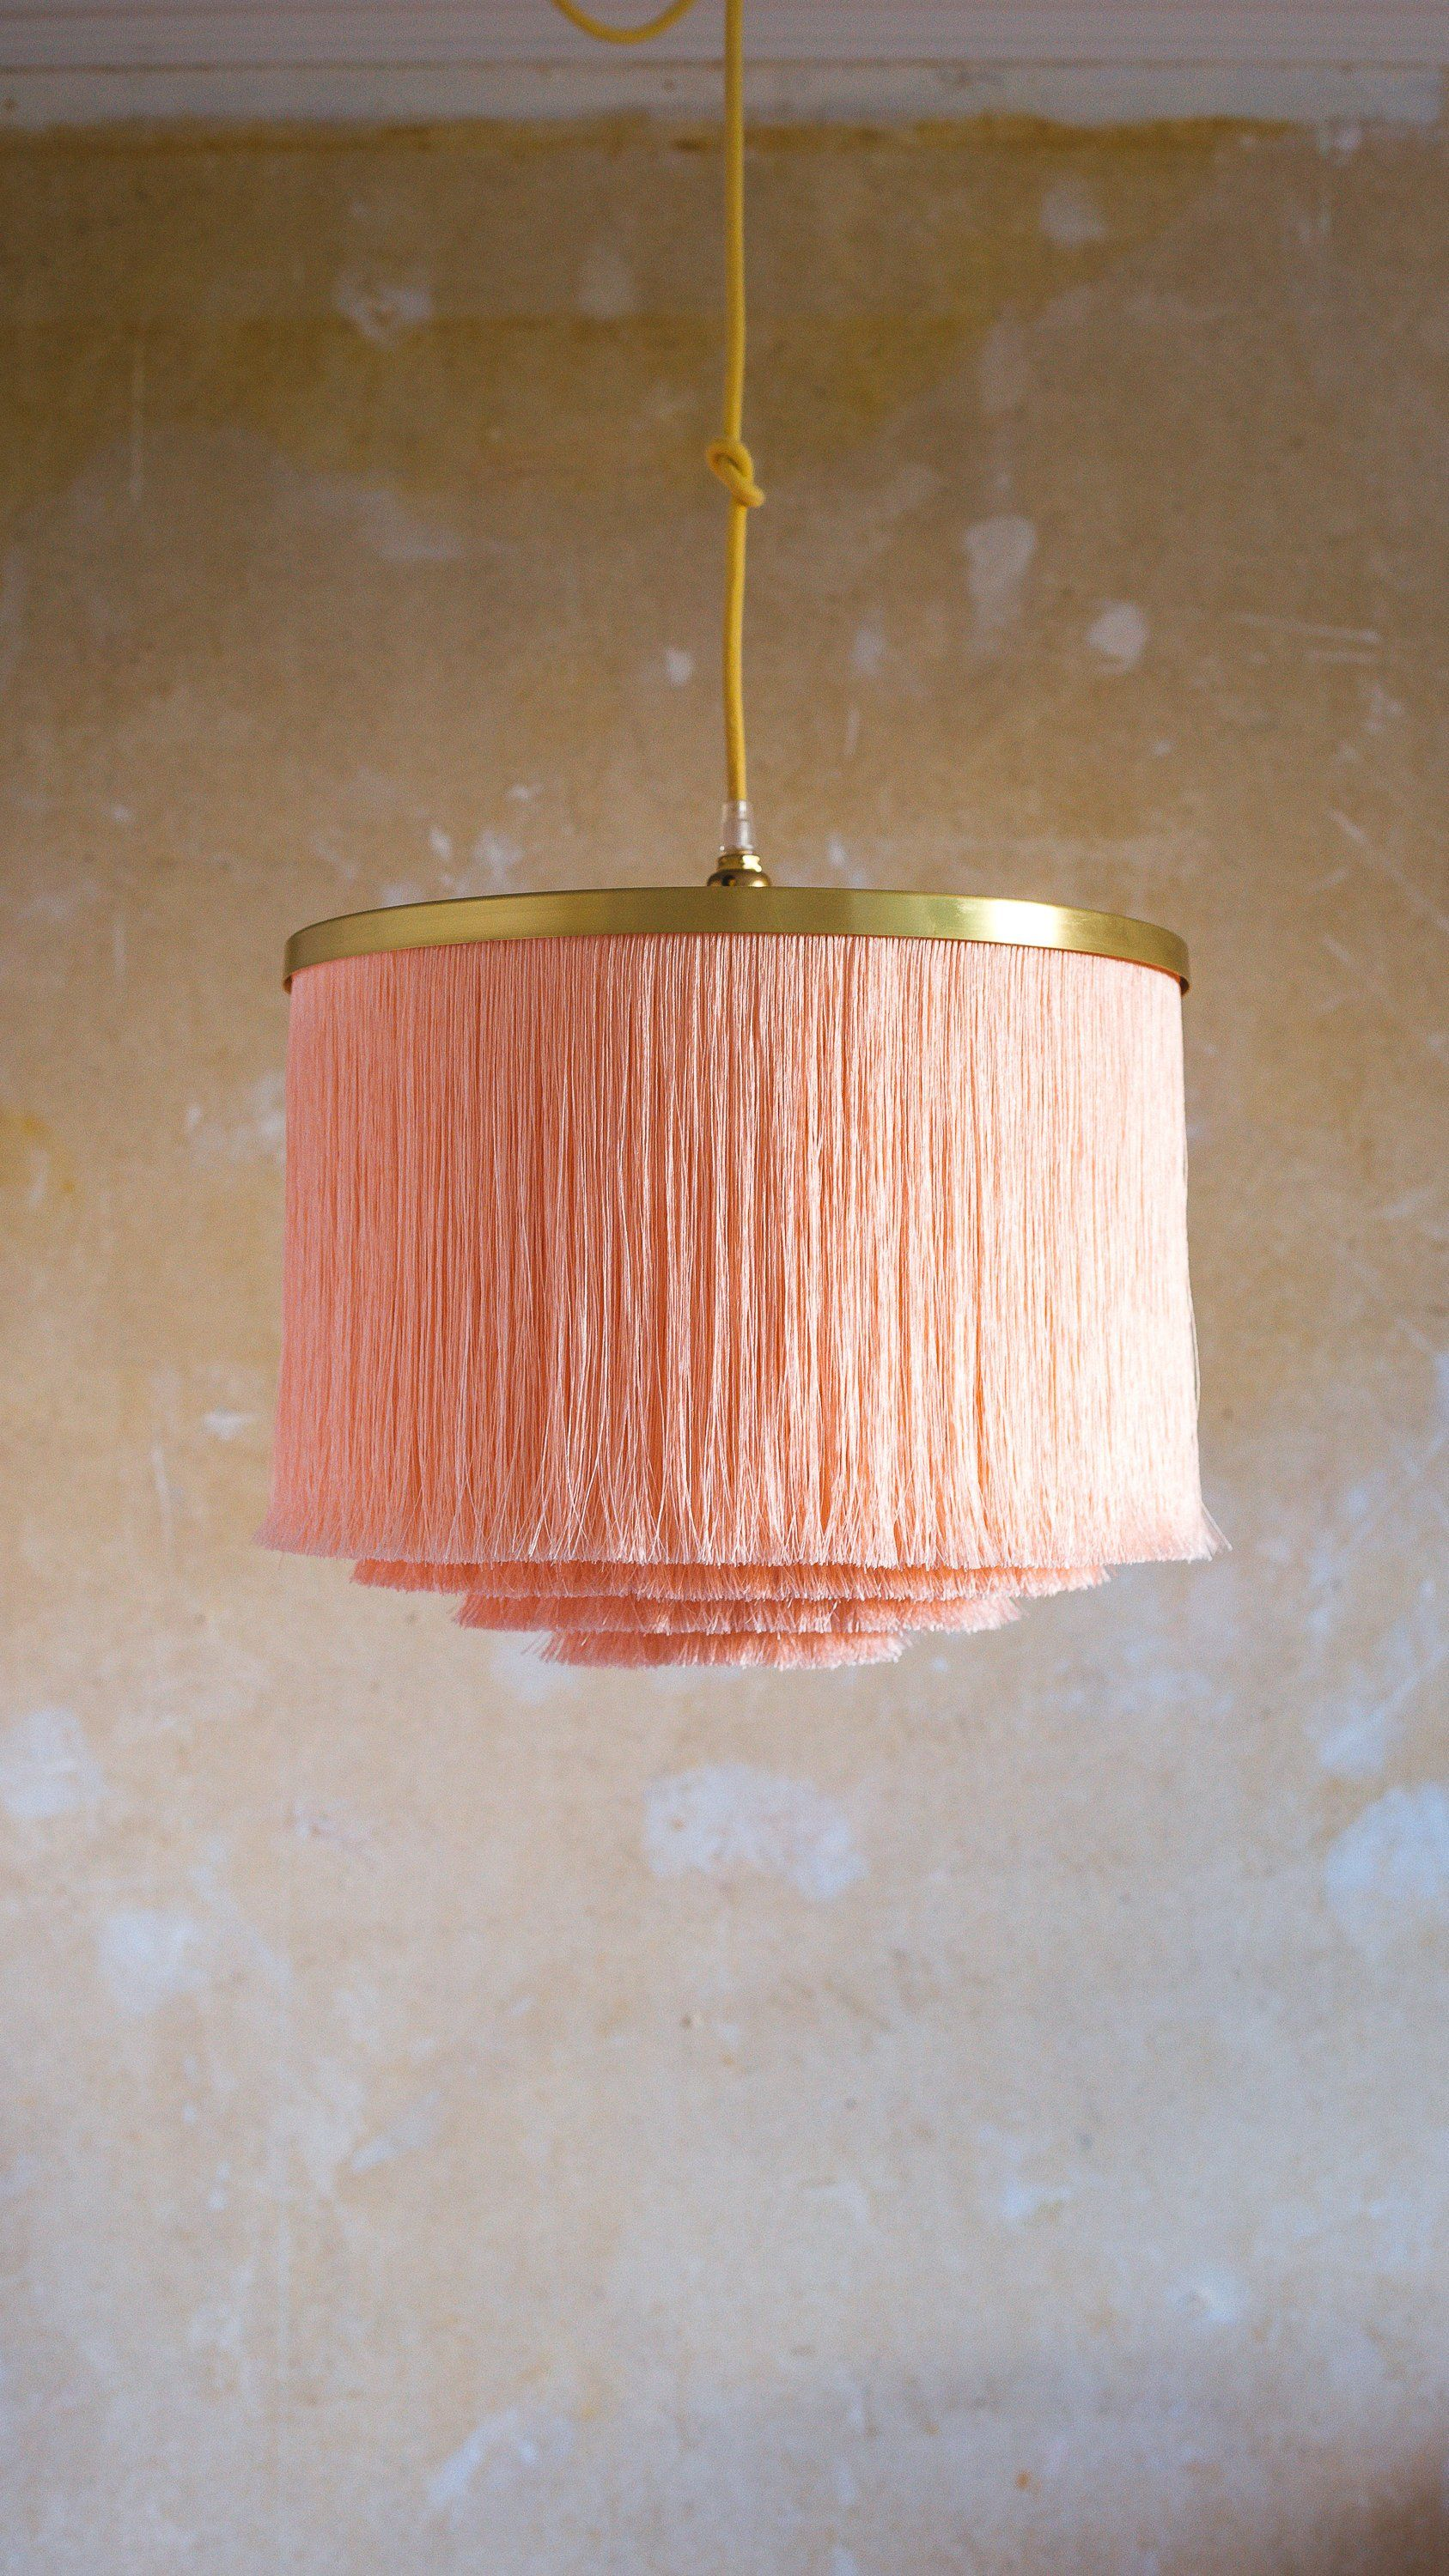 Fringe Light P I L L O W T A L K Lampshade In Softest Etsy